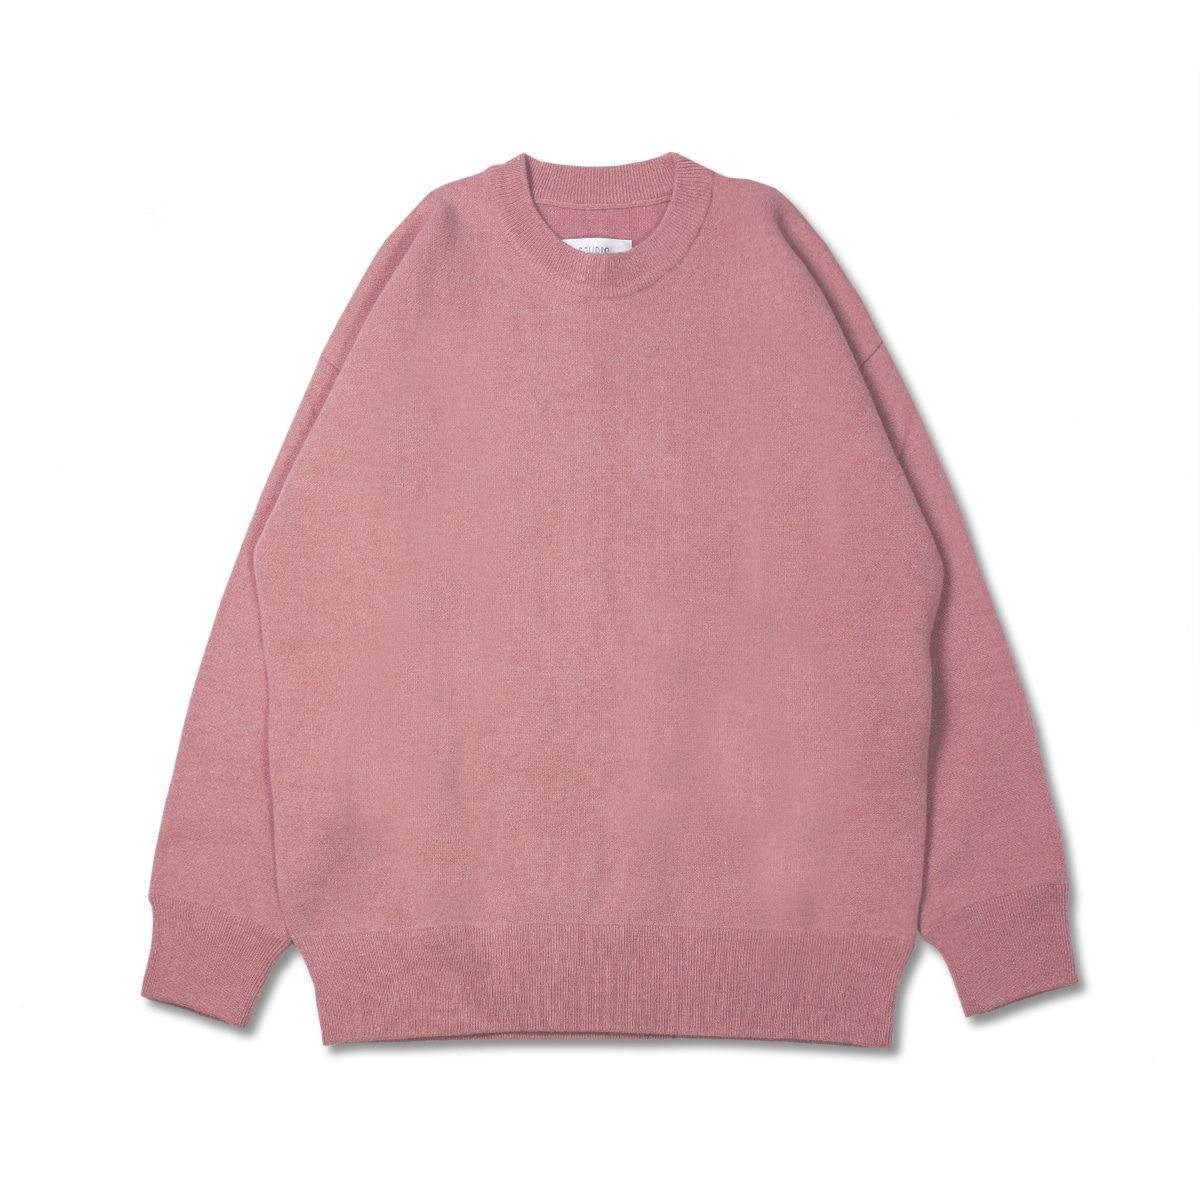 [STUDIO NICHOLSON] DOUBLE FACED WOOL KNITED SWEATSHIRT 'PURTY PINK'